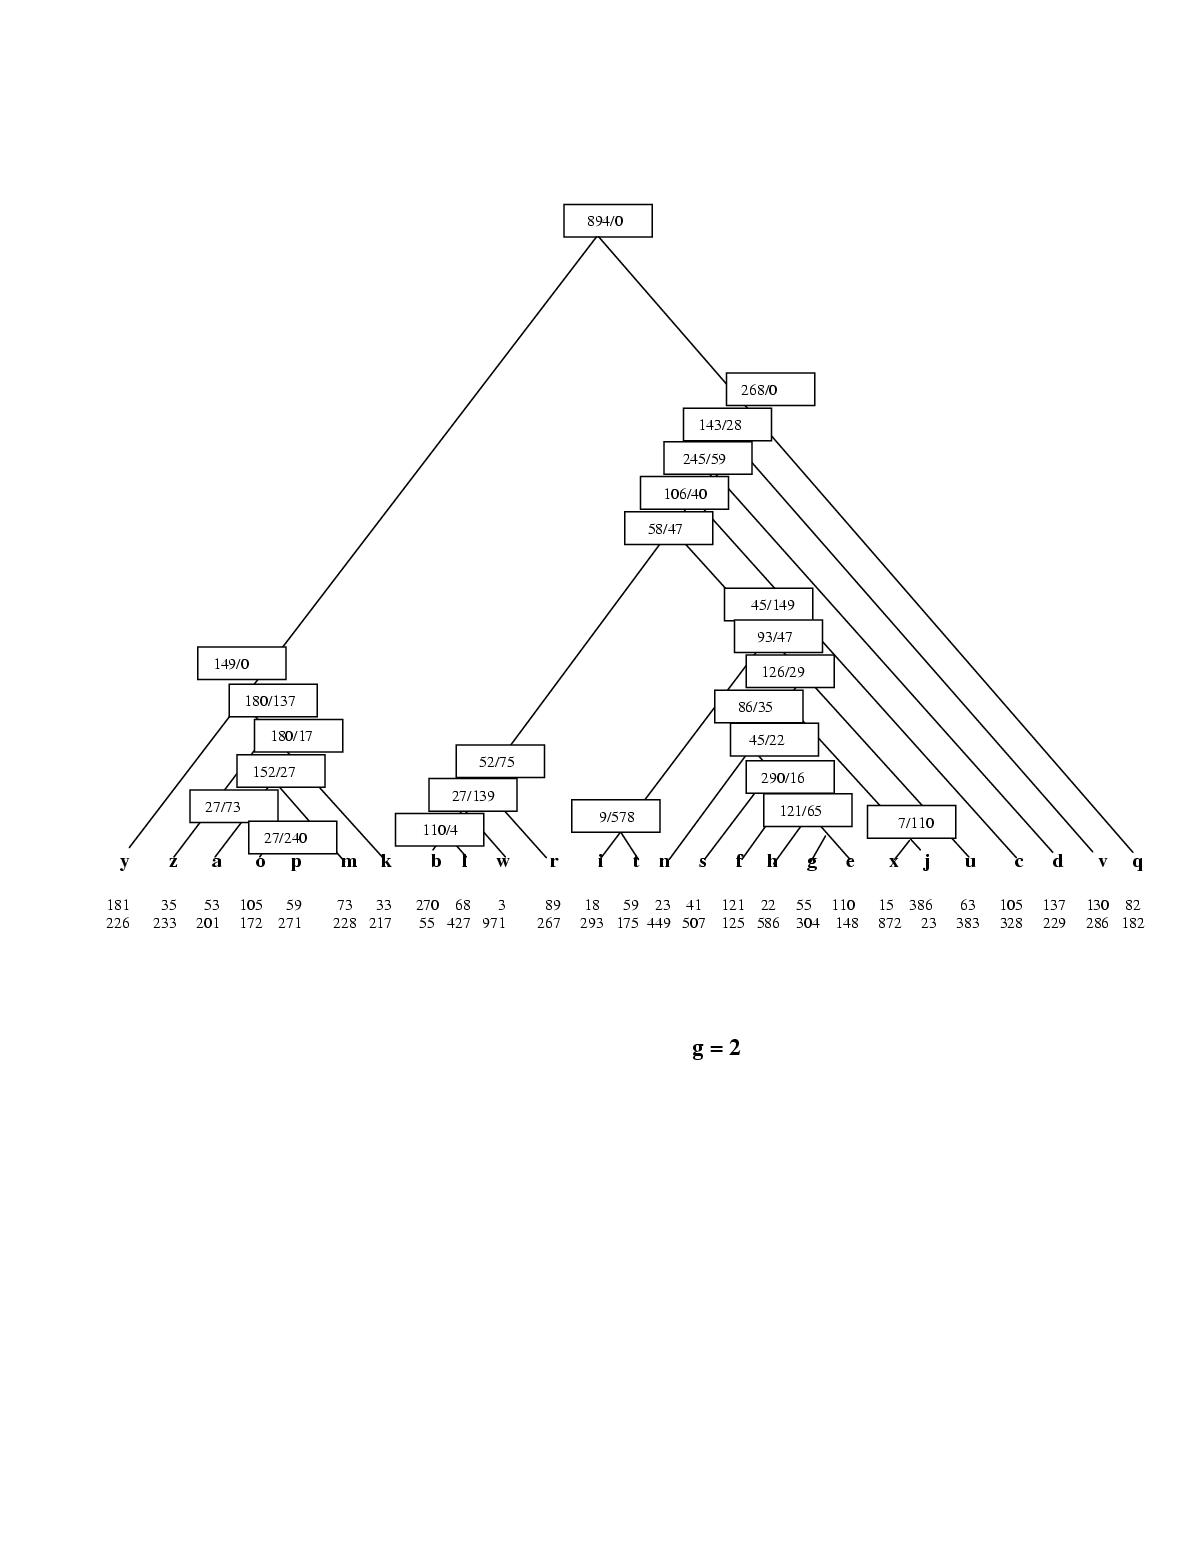 https://static-content.springer.com/image/art%3A10.1186%2F1471-2148-3-2/MediaObjects/12862_2002_Article_36_Fig20_HTML.jpg